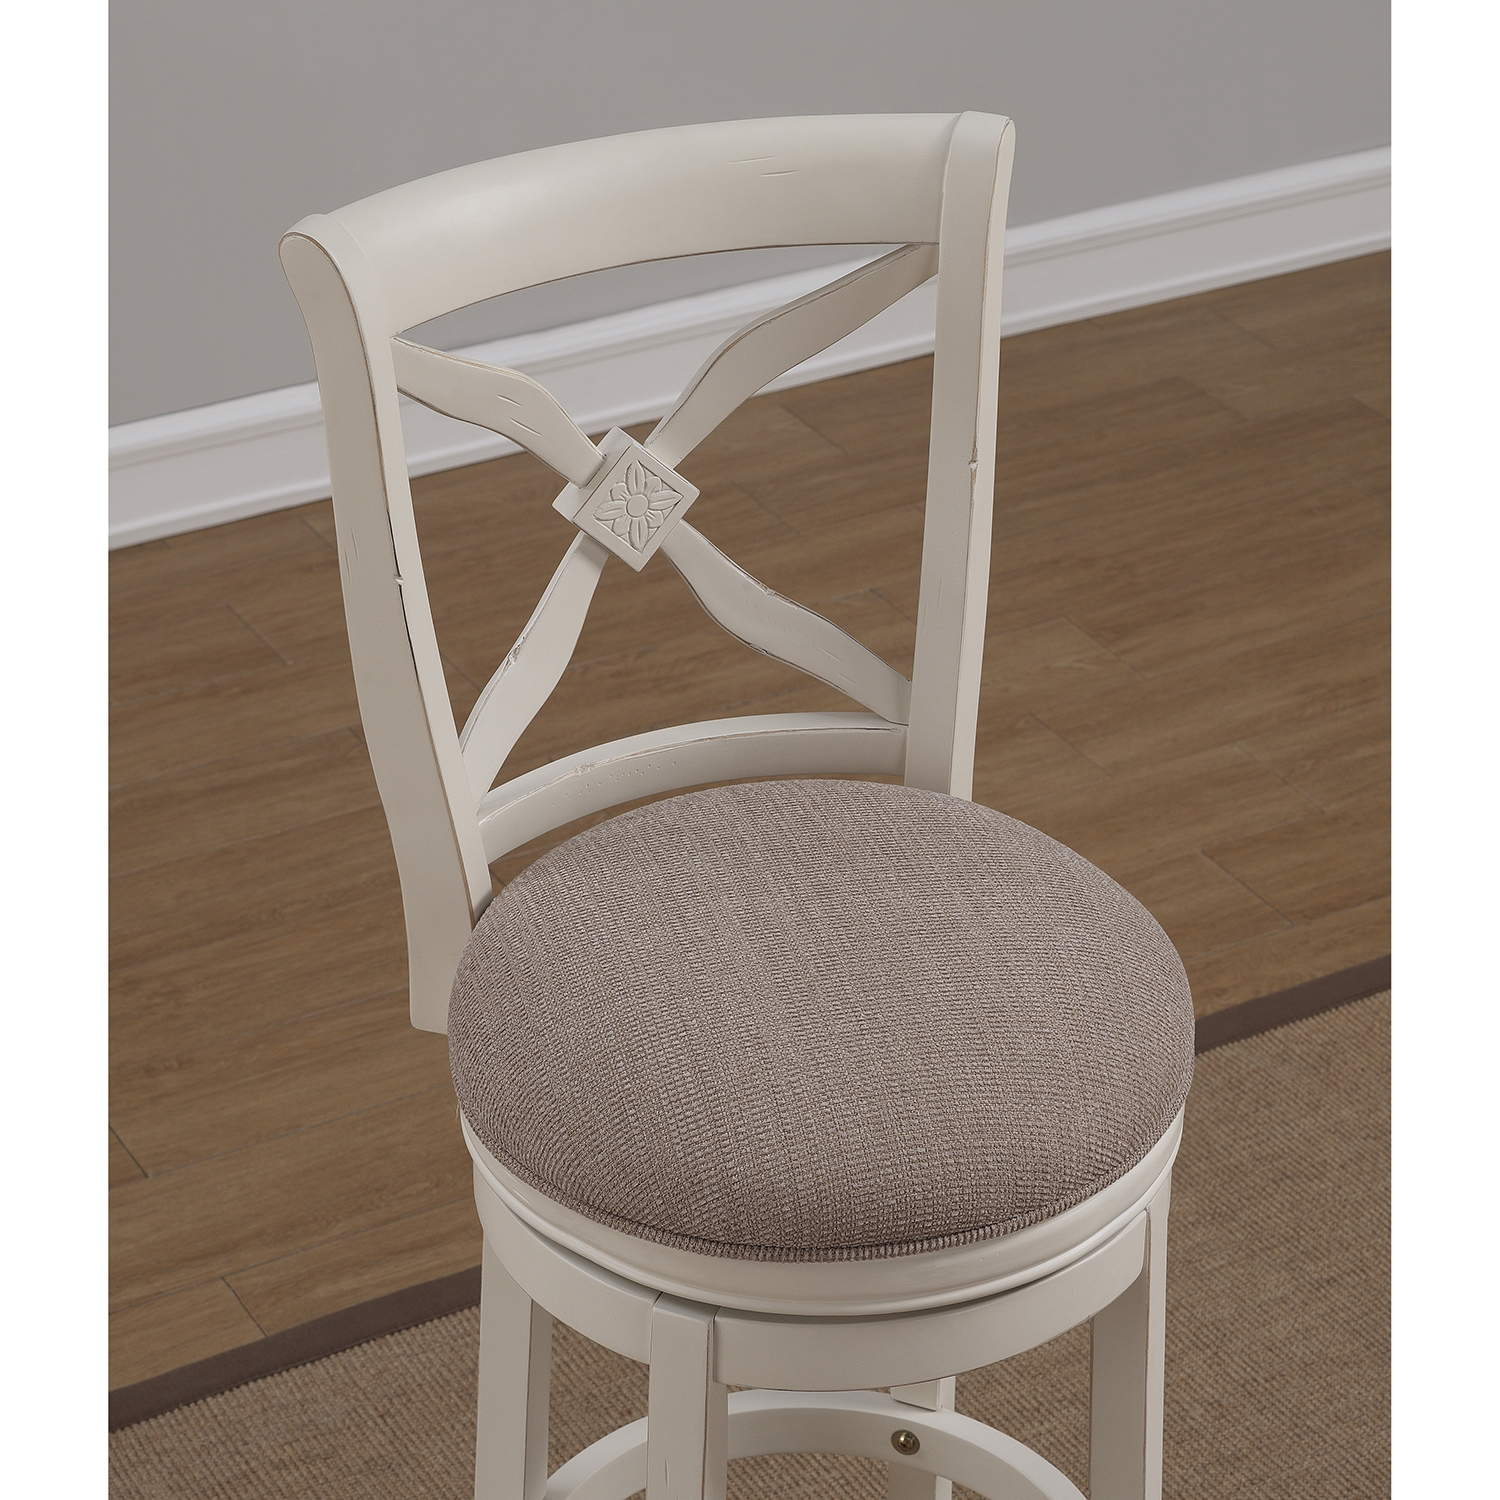 ... Accera Swivel Tall Bar Stool - Antique White Light Brown Fabric - AW-B2 & Accera Swivel Tall Bar Stool - Antique White Light Brown Fabric ... islam-shia.org